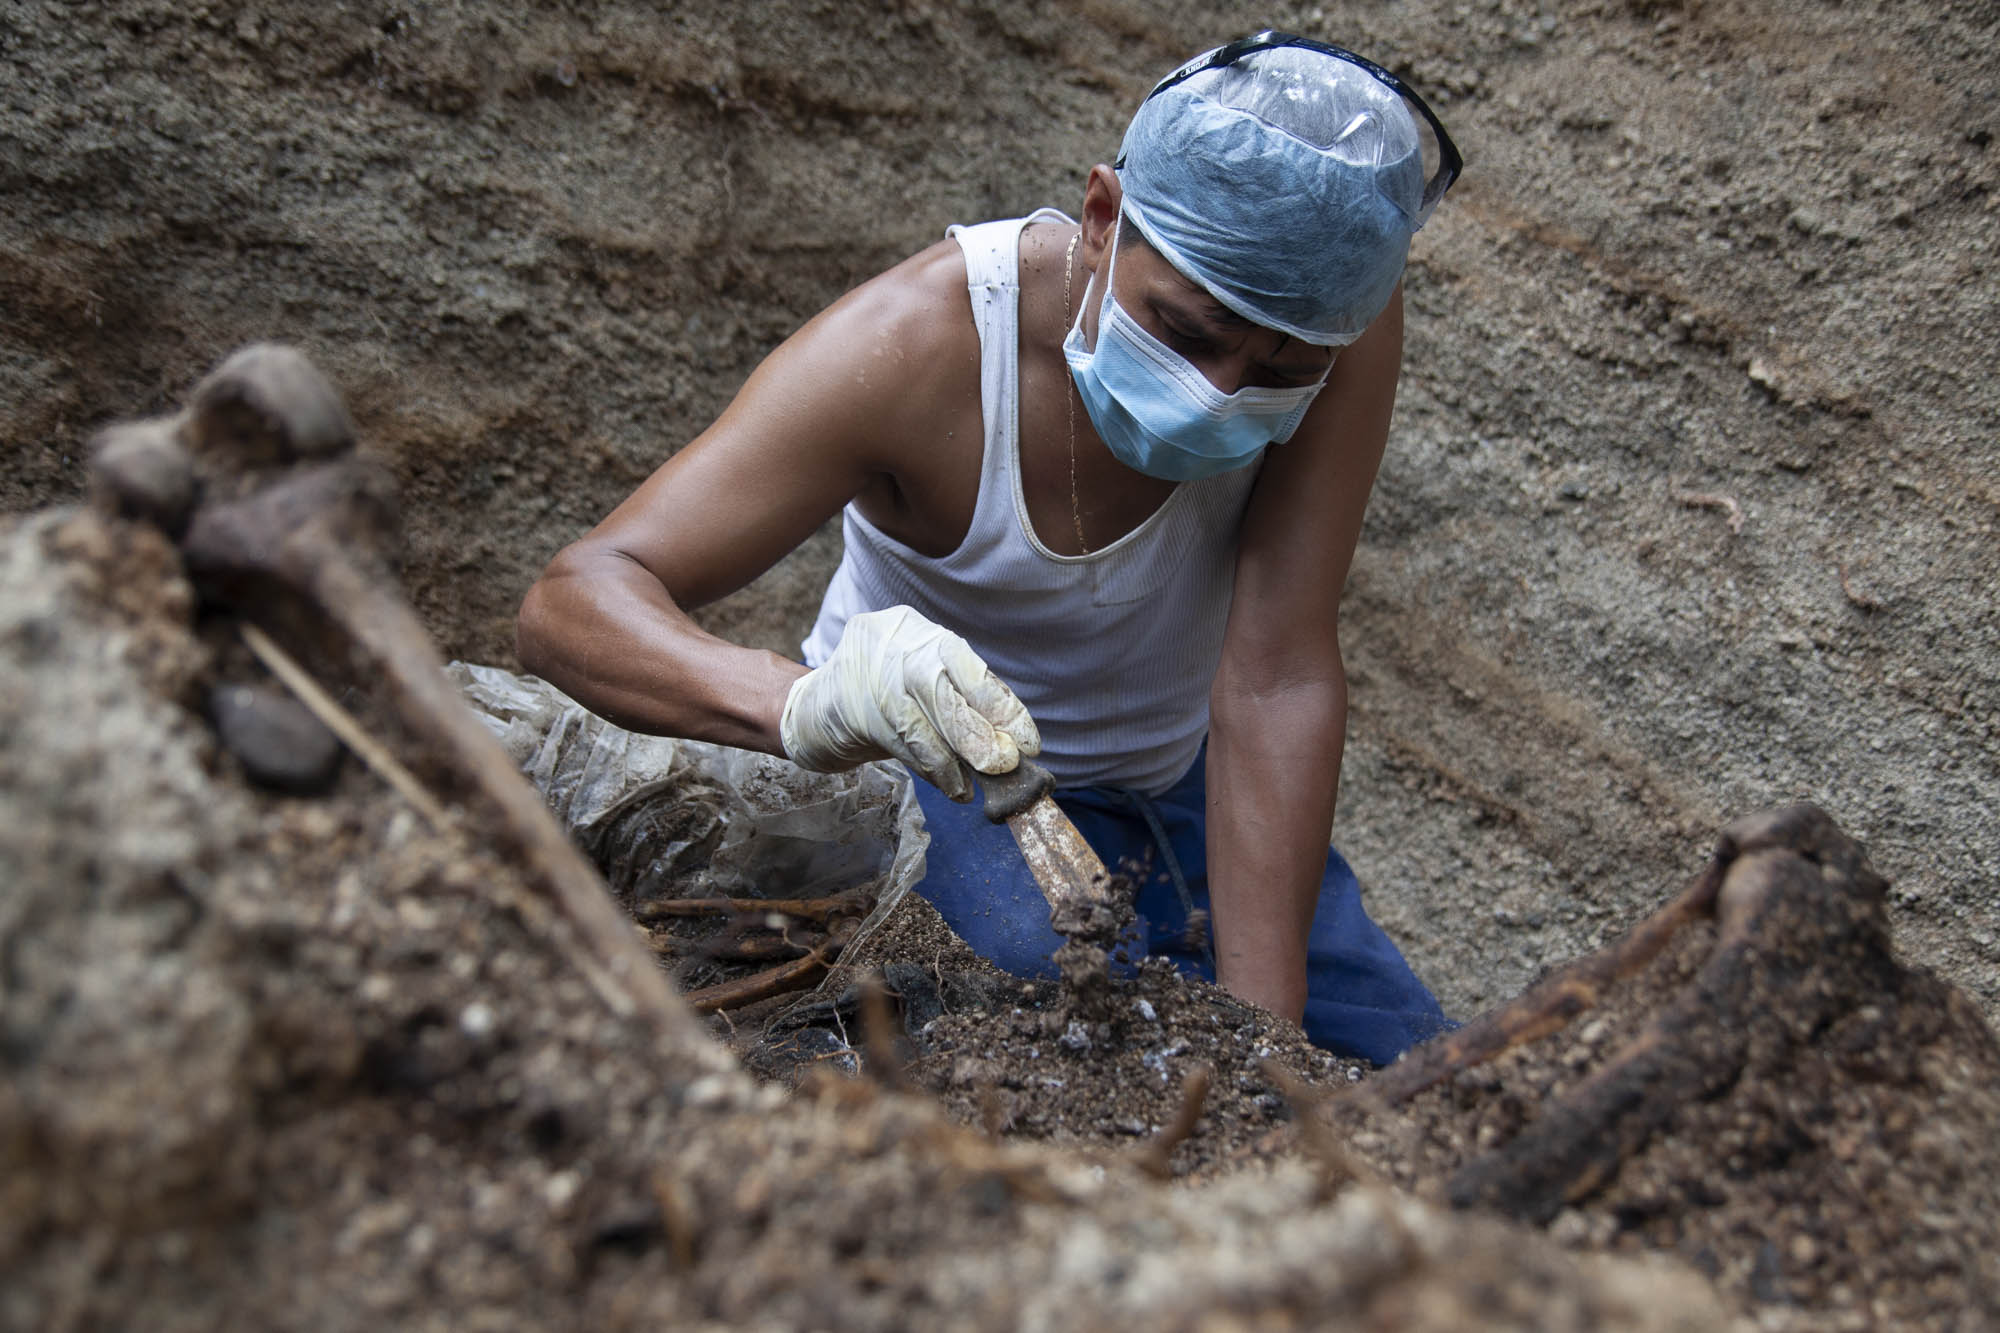 Israel finishing his work in one burial site use by the gangs to dispose killed people.